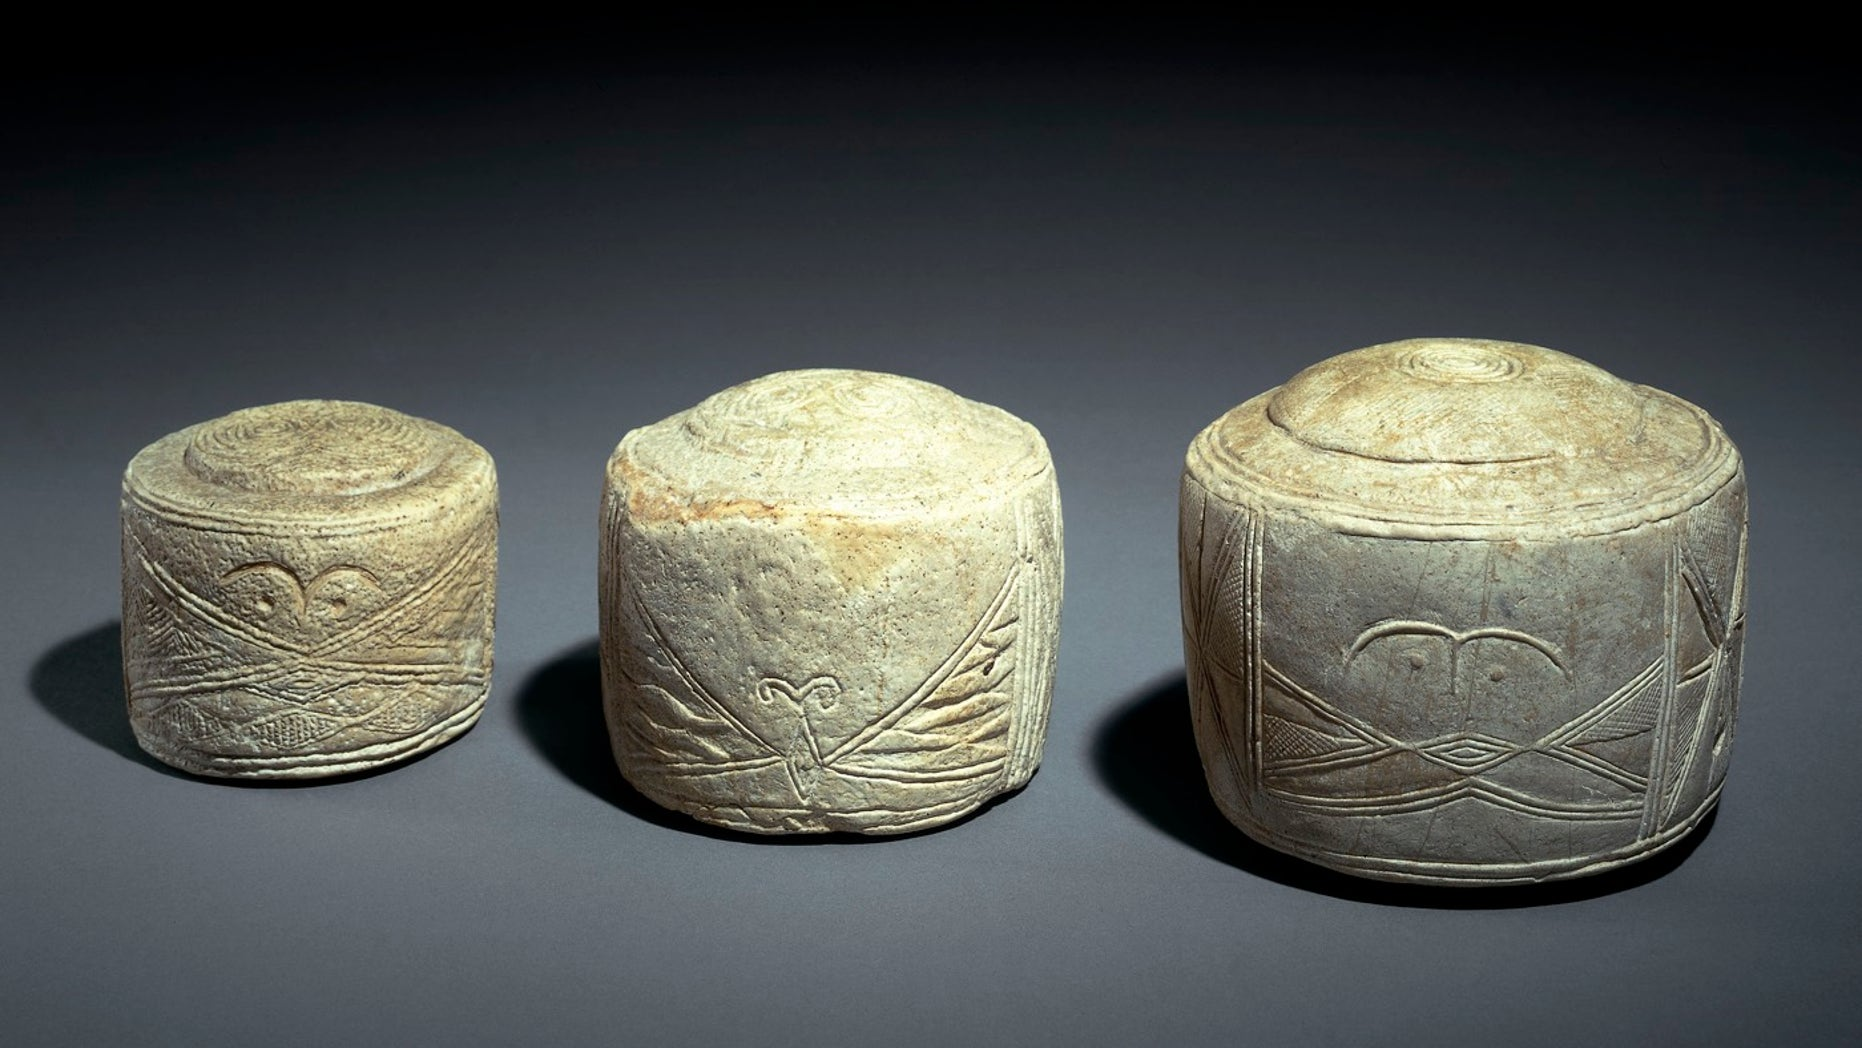 Researchers say these chalk cylinders, carved more than 4,000 years ago, give the exact length measurements used to lay out Neolithic monuments like Stonehenge.